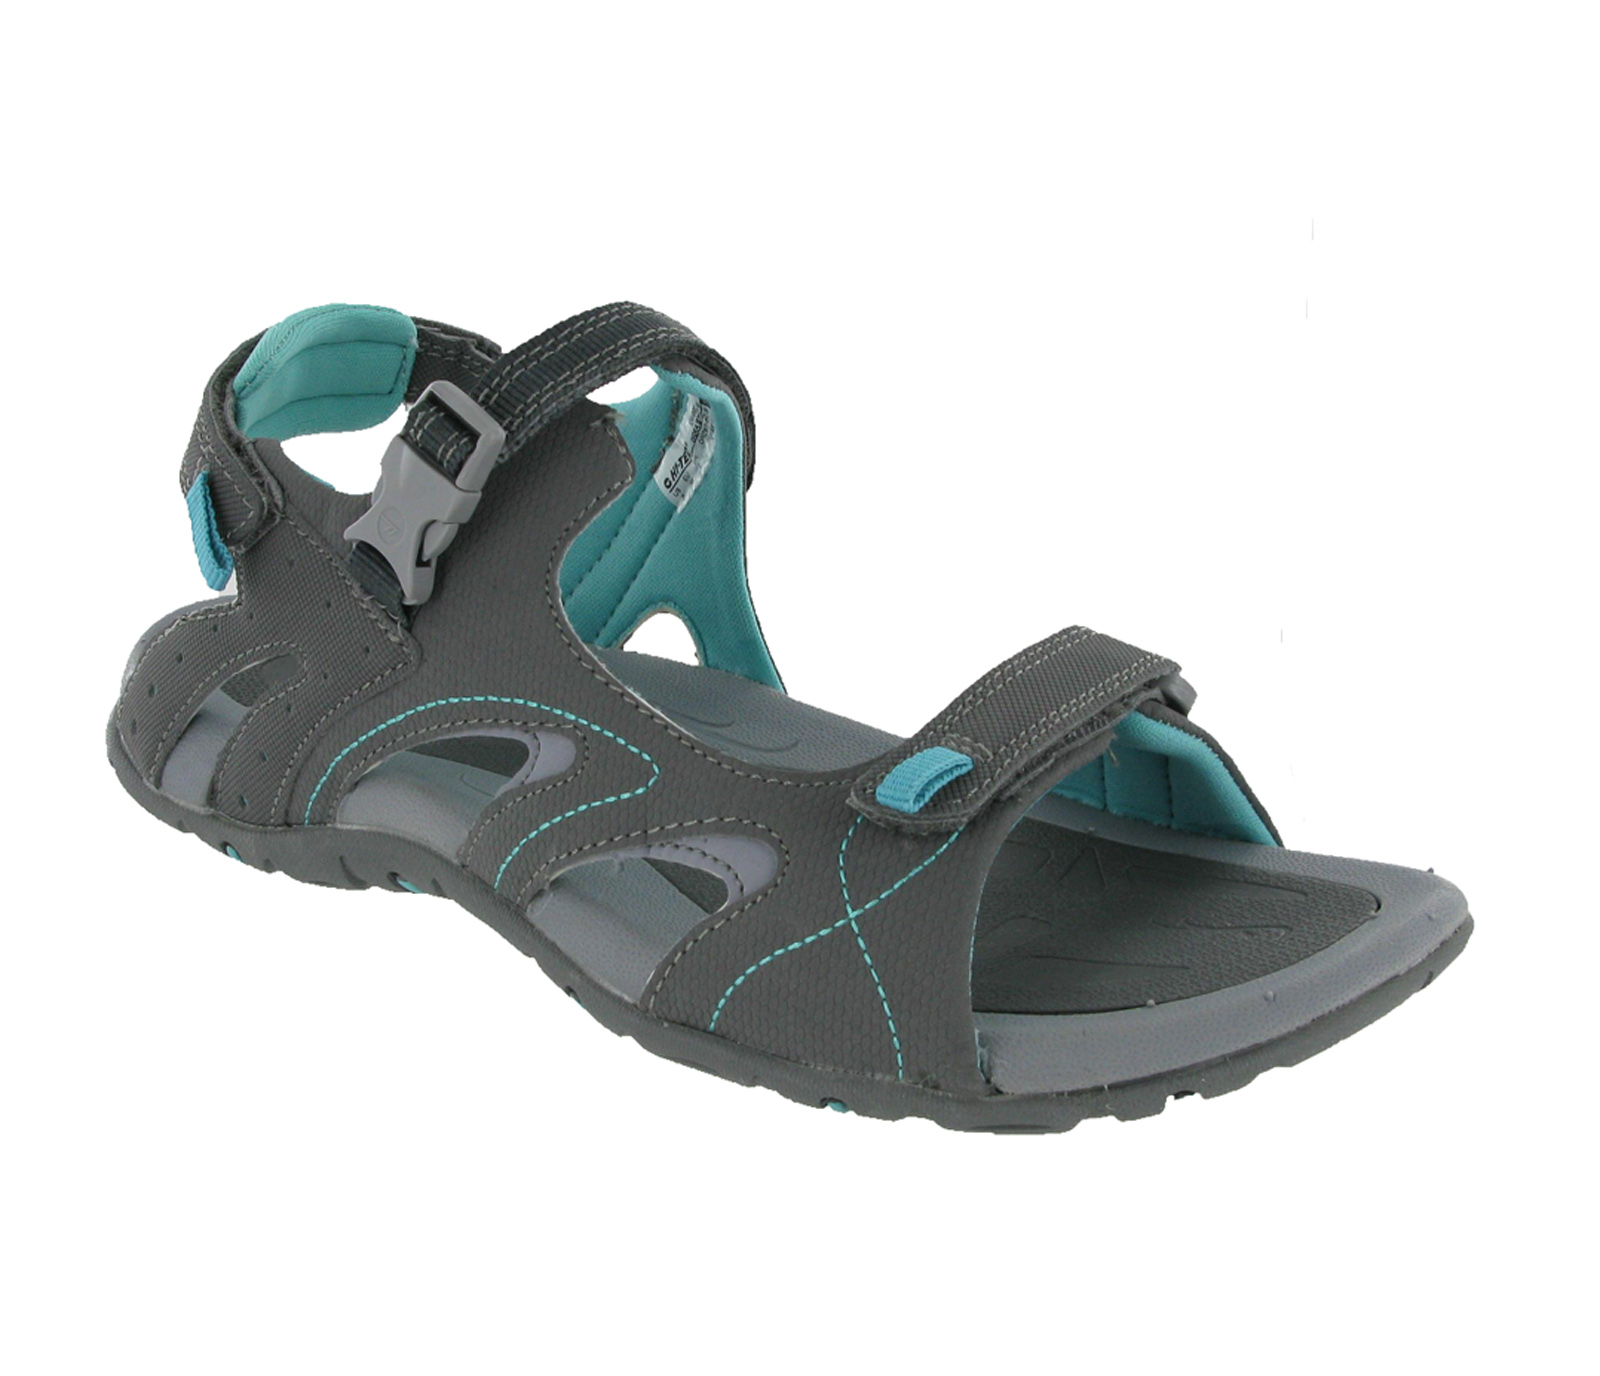 New-Hi-Tec-Womens-Indra-Strap-Athletic-Outdoor-